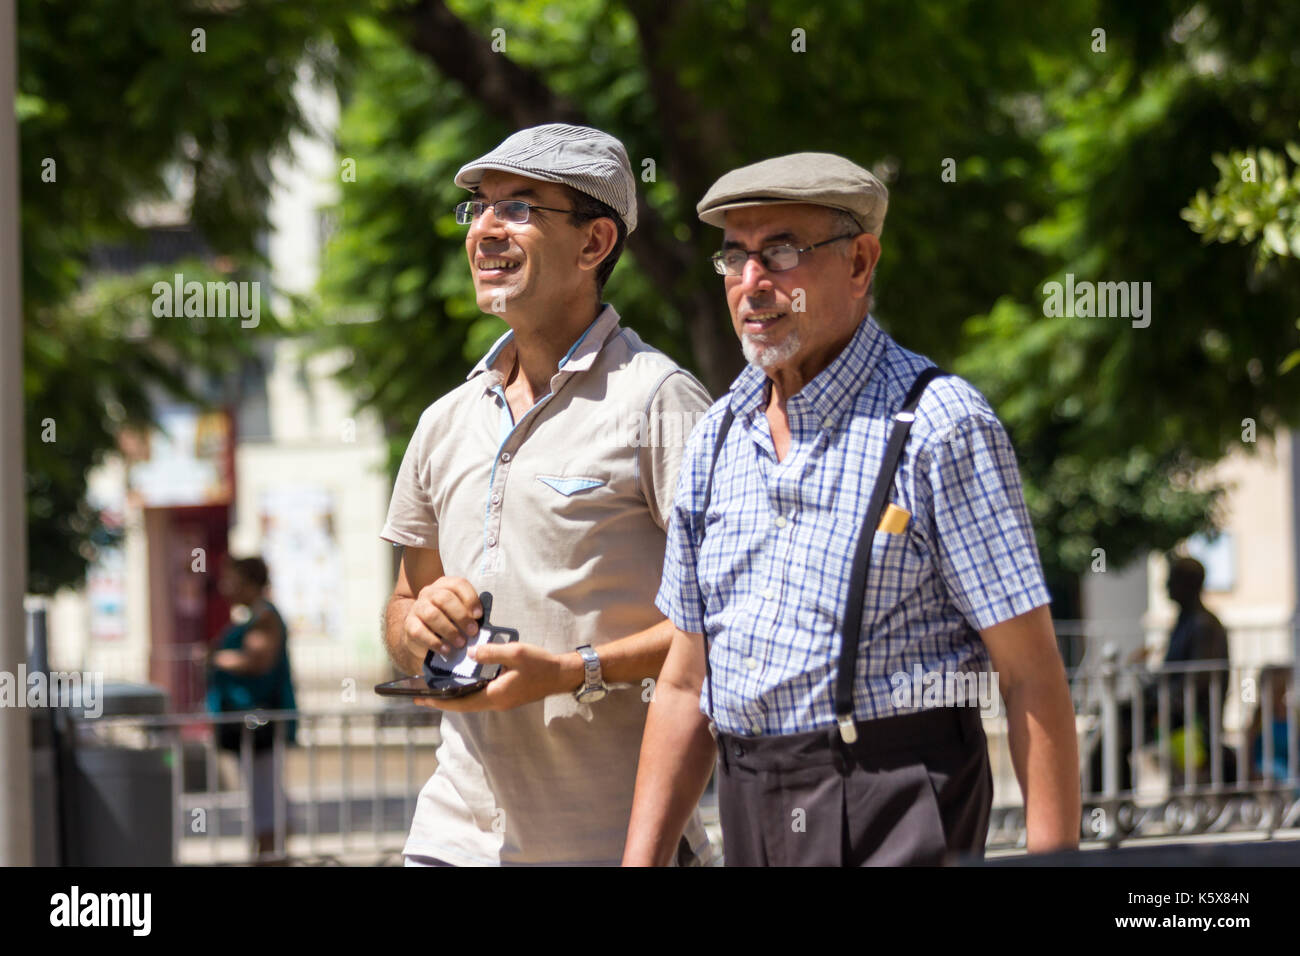 Father snd son walking in Malaga, Spain wearing flat caps - Stock Image